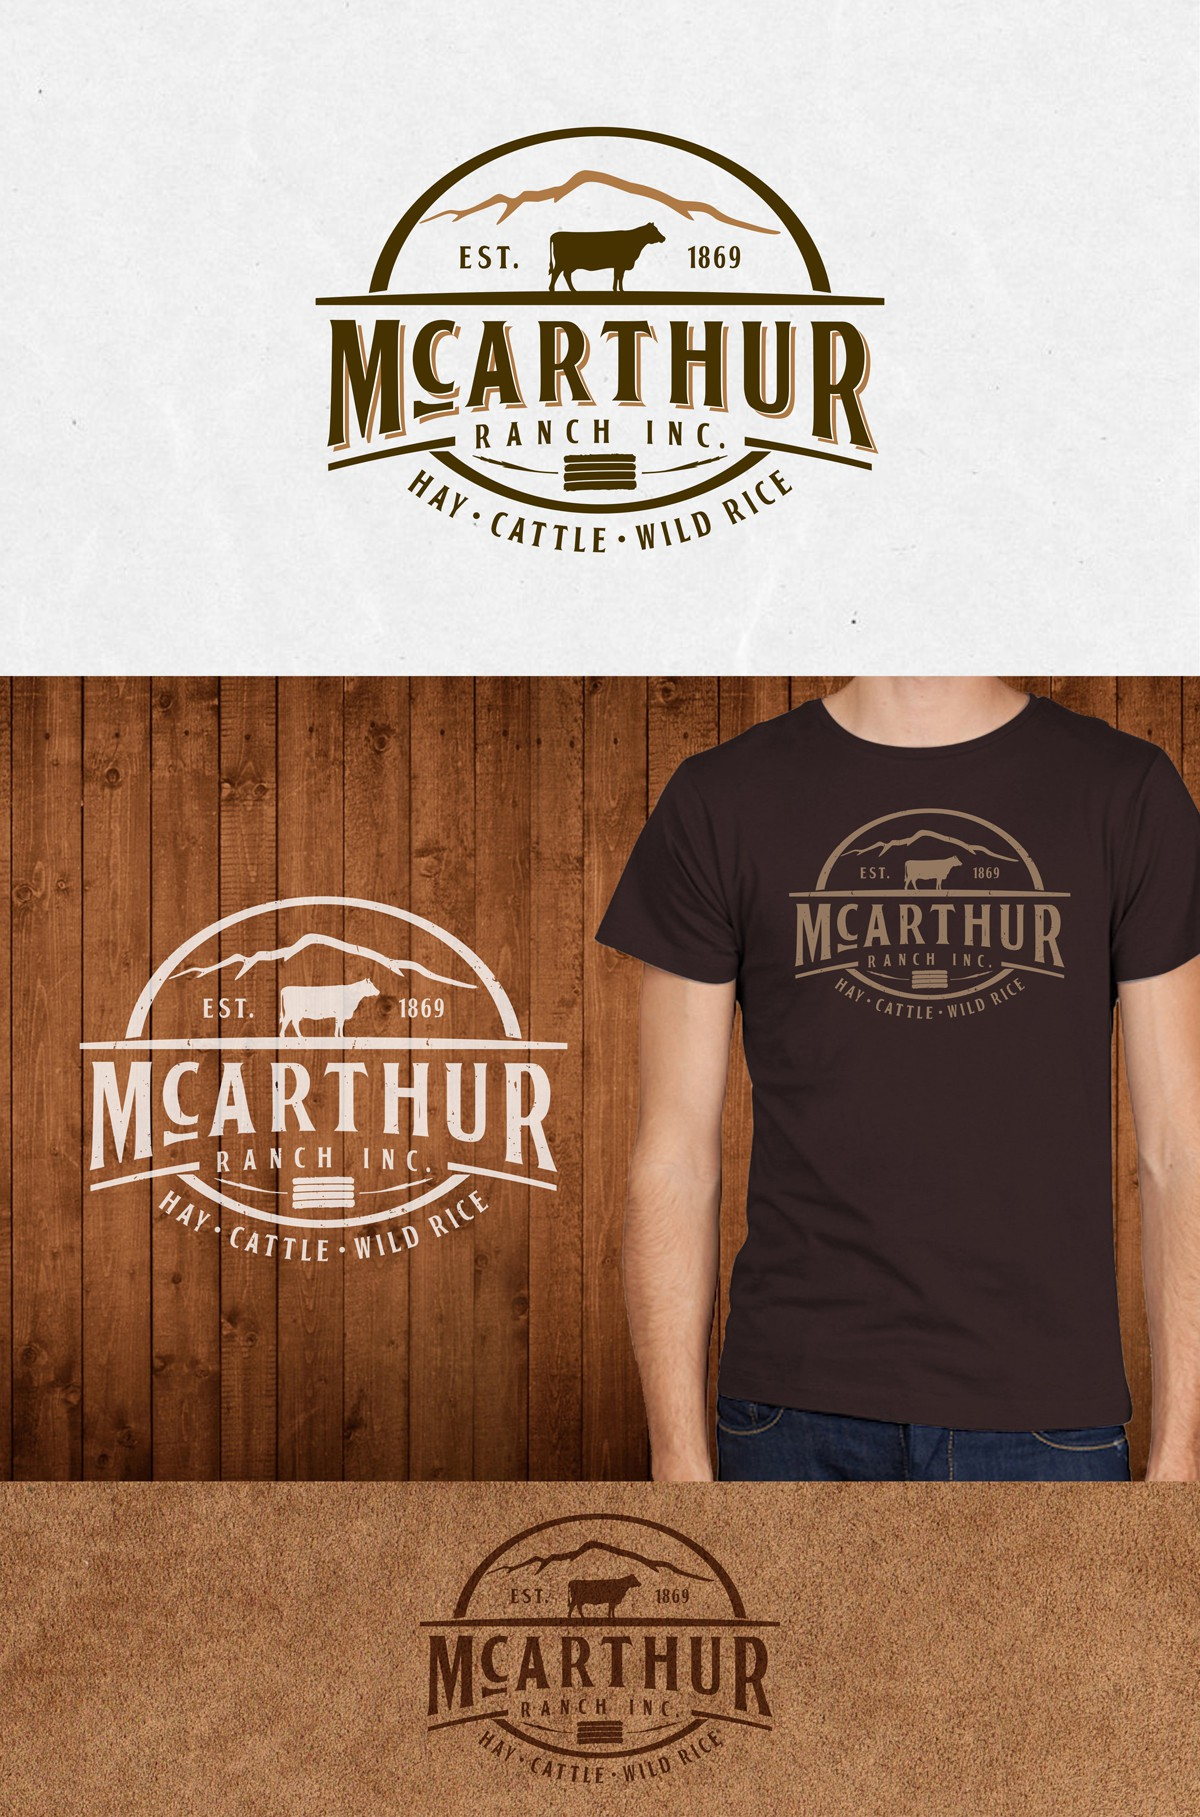 New logo wanted for McArthur Ranch Inc.